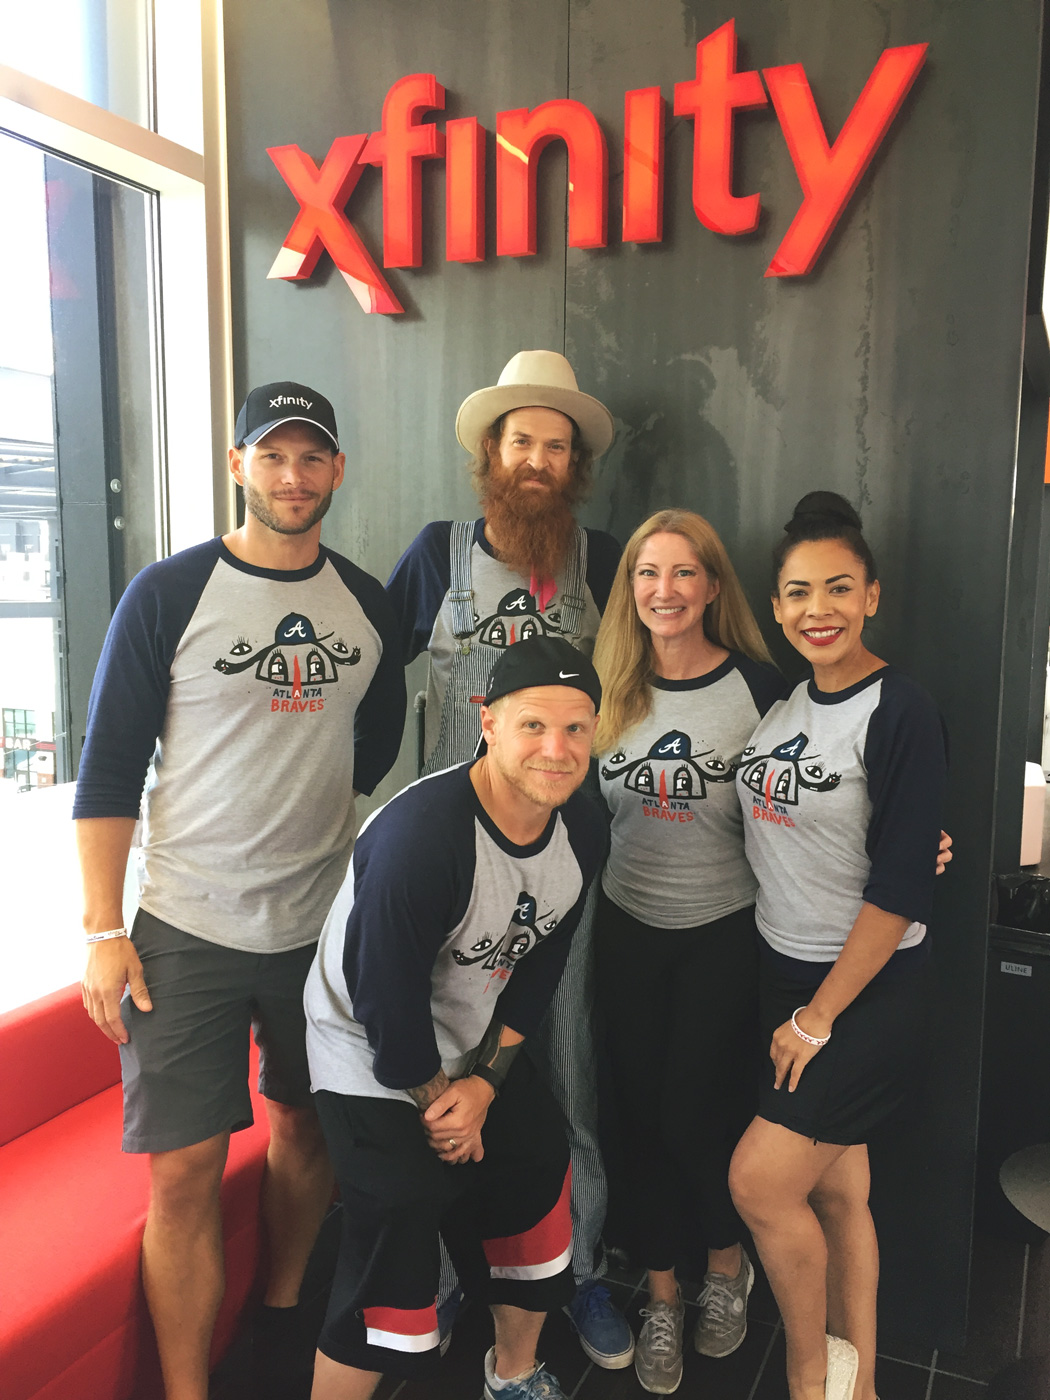 BlackCatTips-Atlanta-Braves-Xfinity-Rooftop-tshirt-day-9